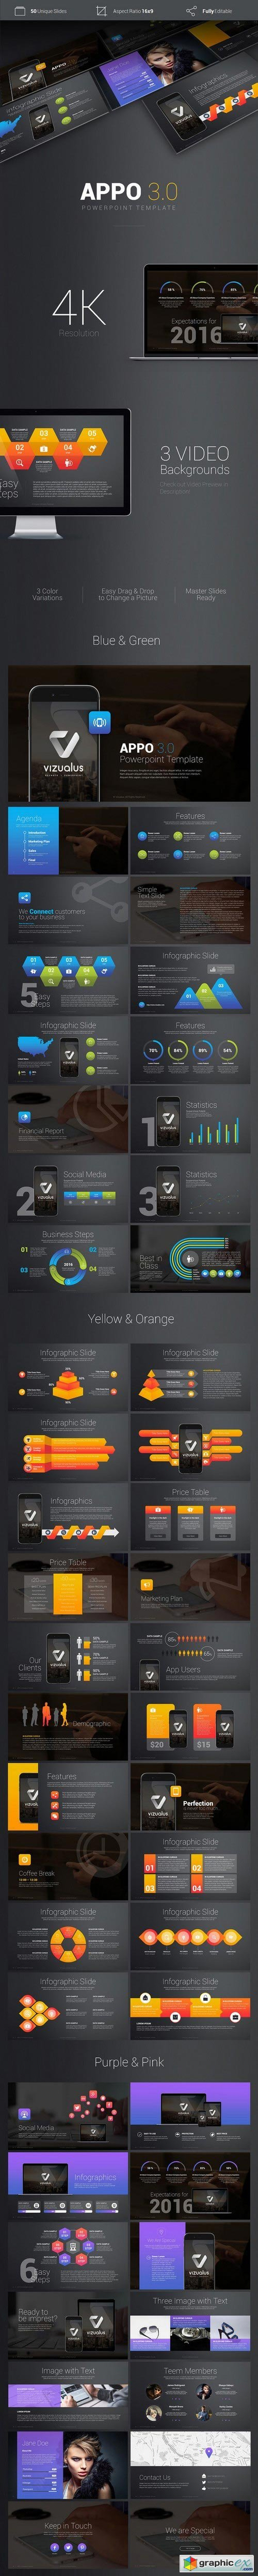 APPO 3.0 Powerpoint Template